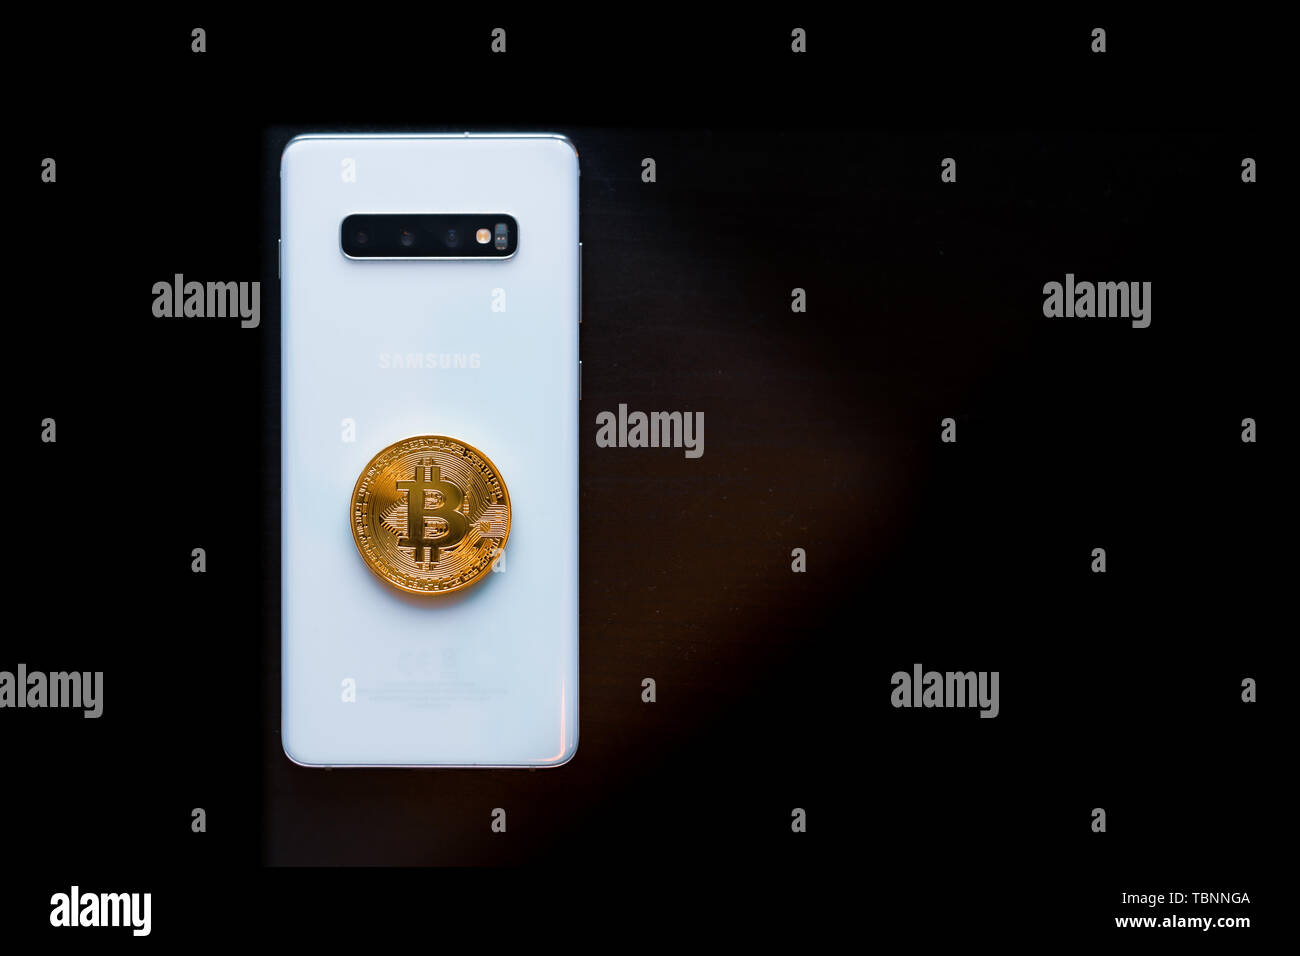 Smart Phone with a Physical Bitcoin on top - Stock Image